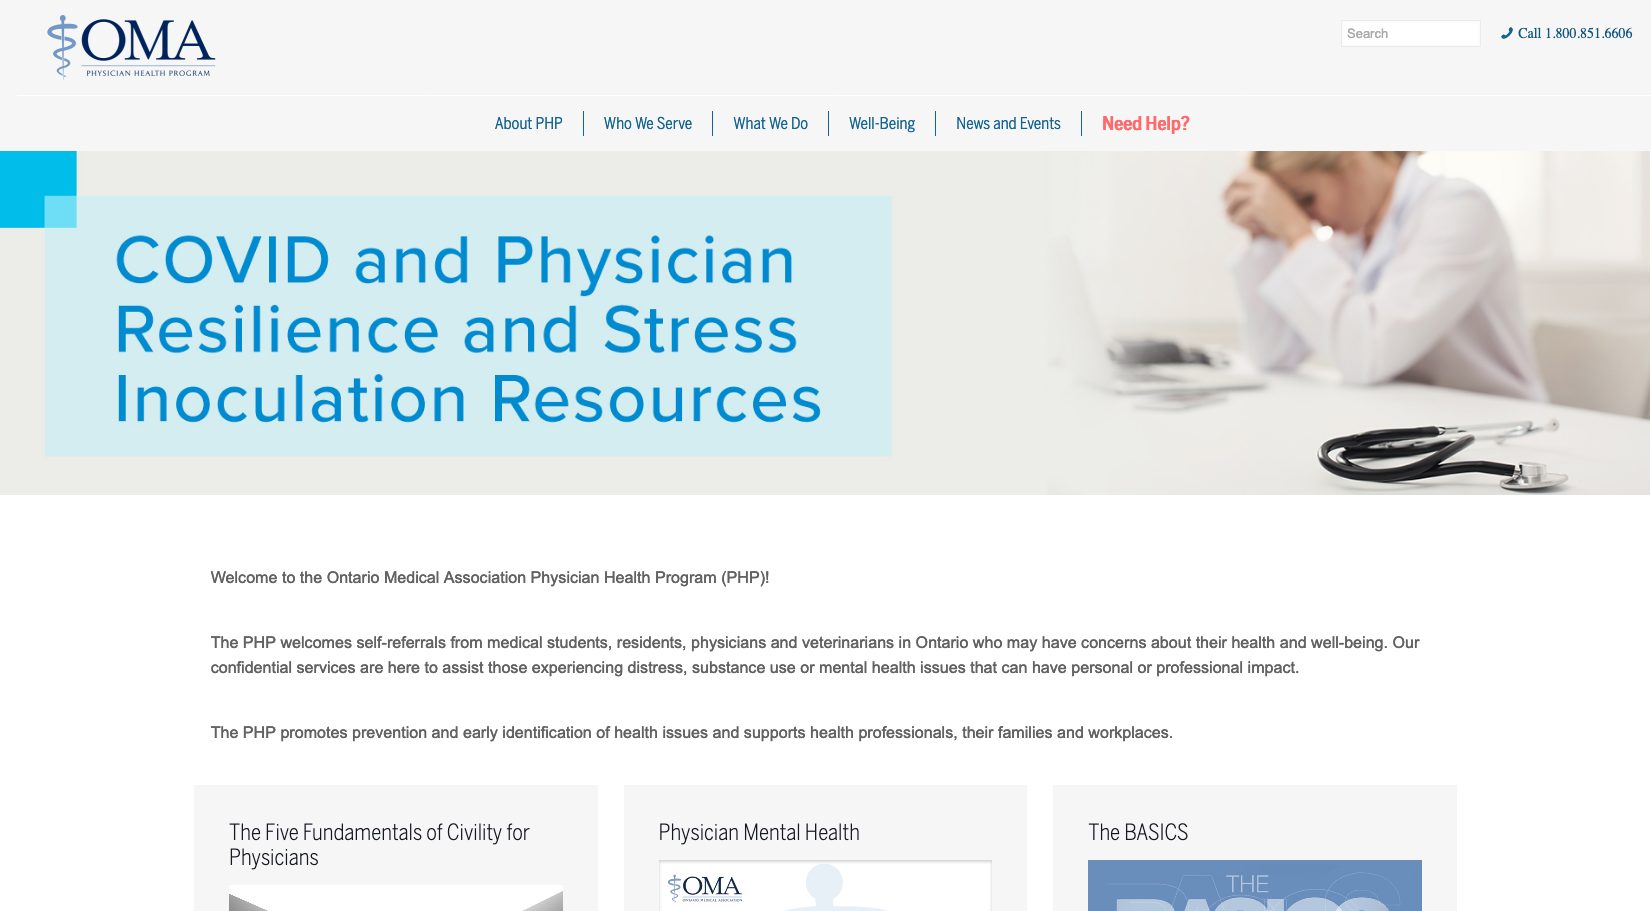 Ontario Medical Association Physician Health Program (PHP)